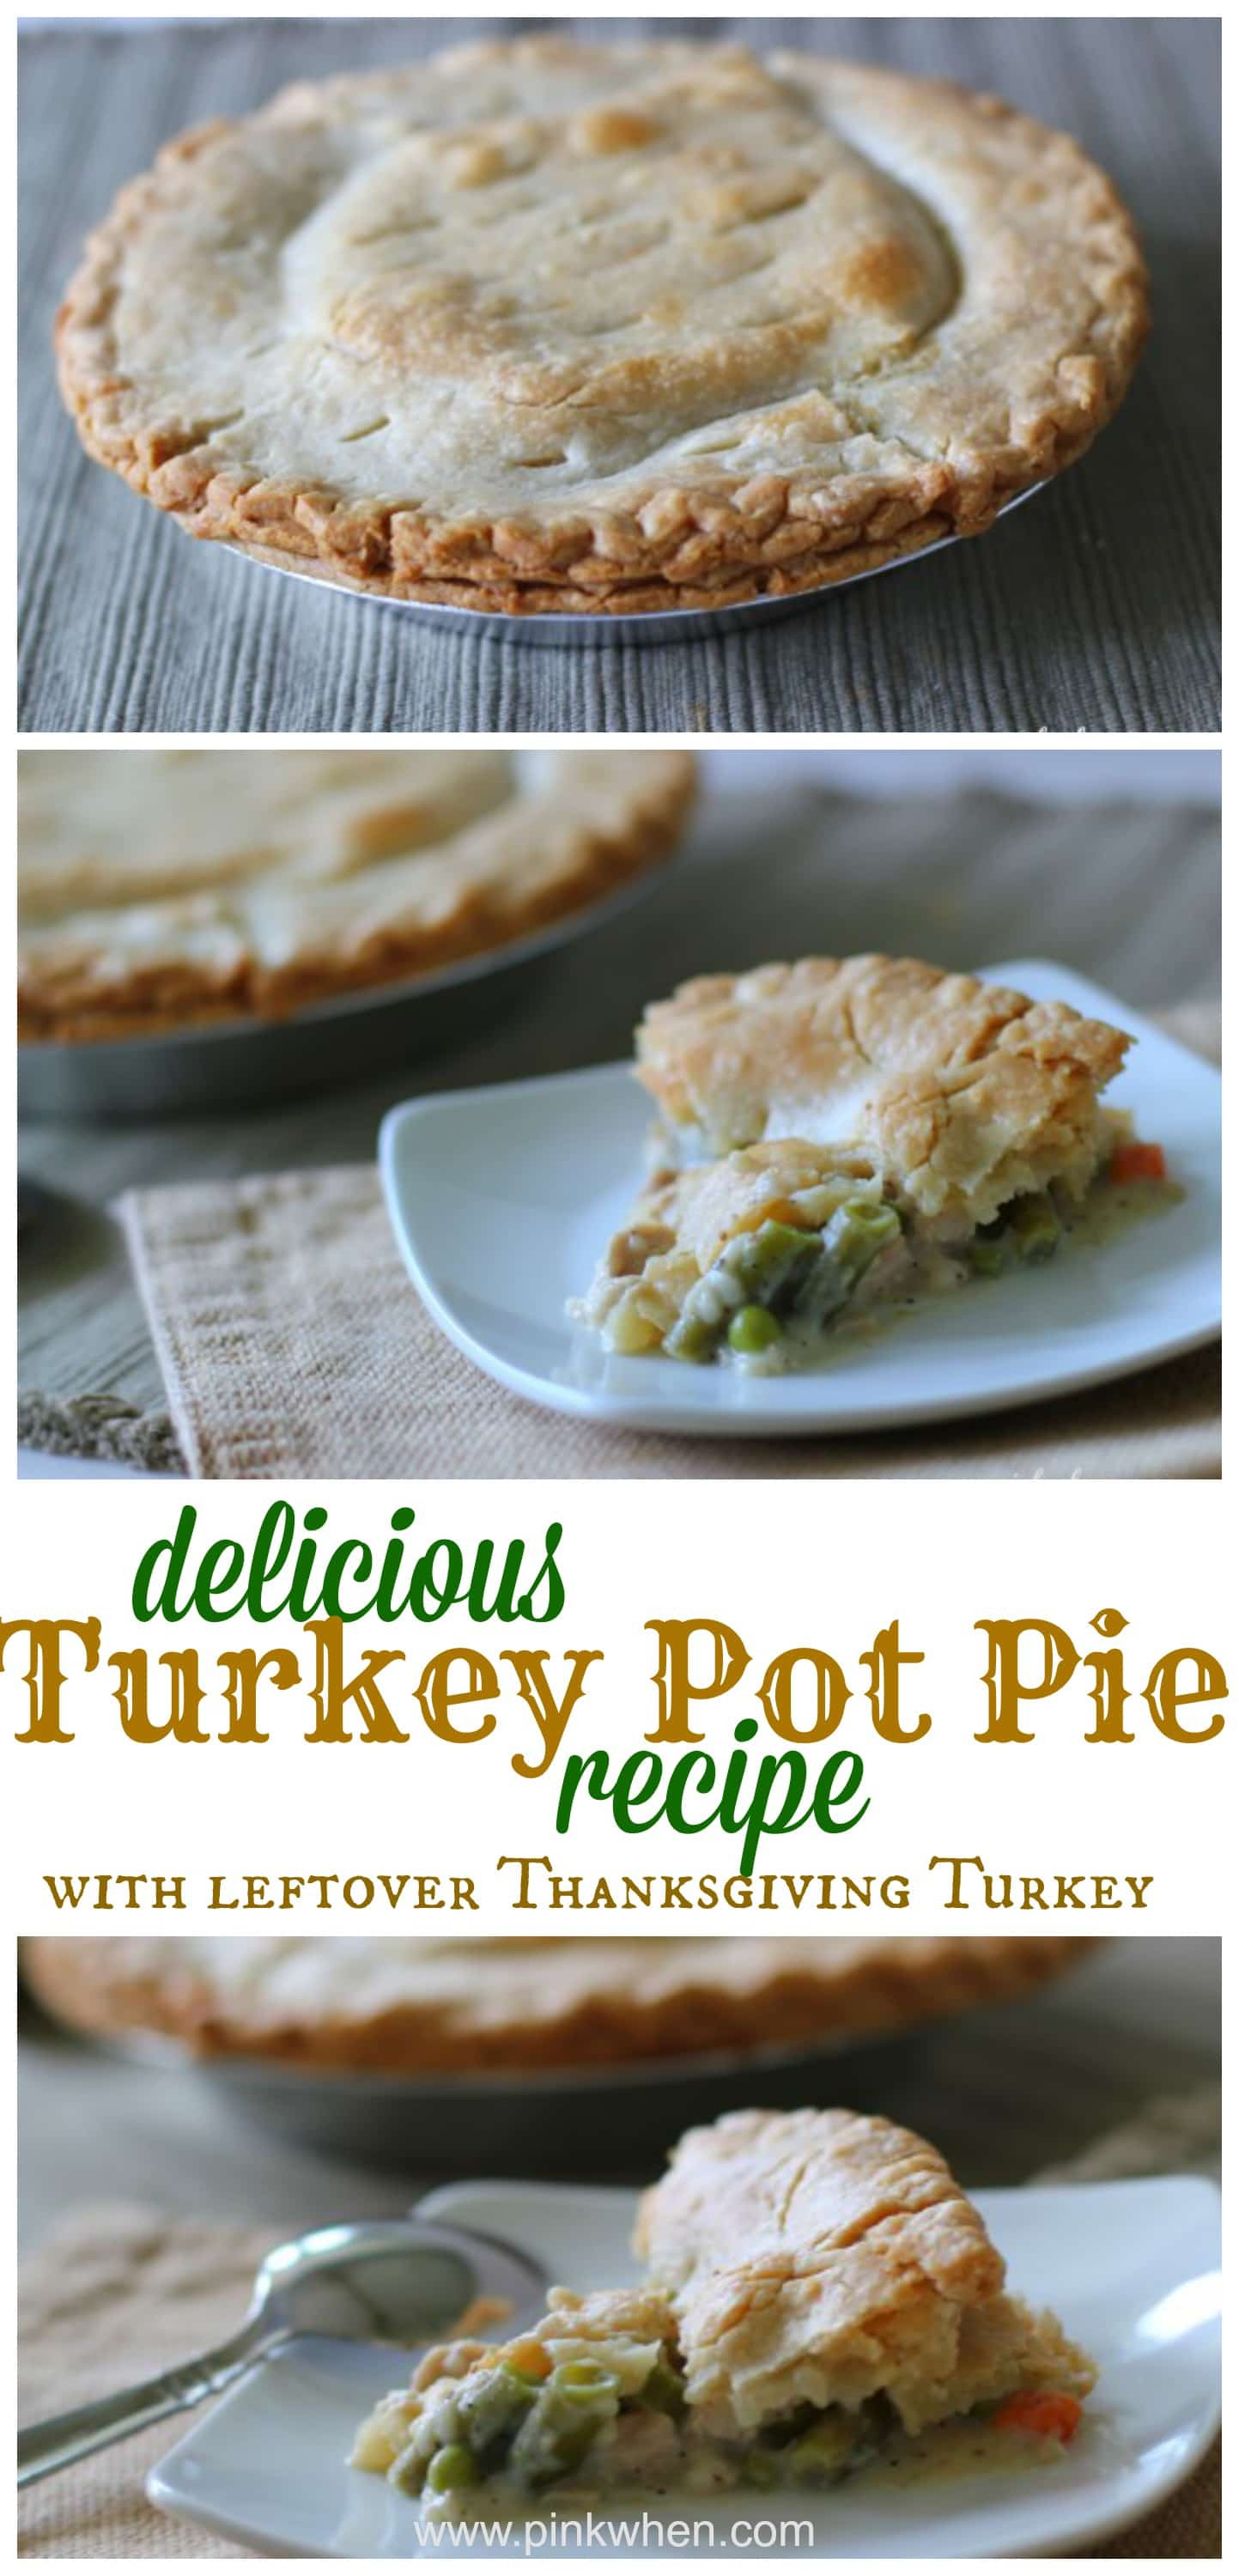 Recipe For Thanksgiving Turkey  Delicious Turkey Pot Pie Recipe PinkWhen